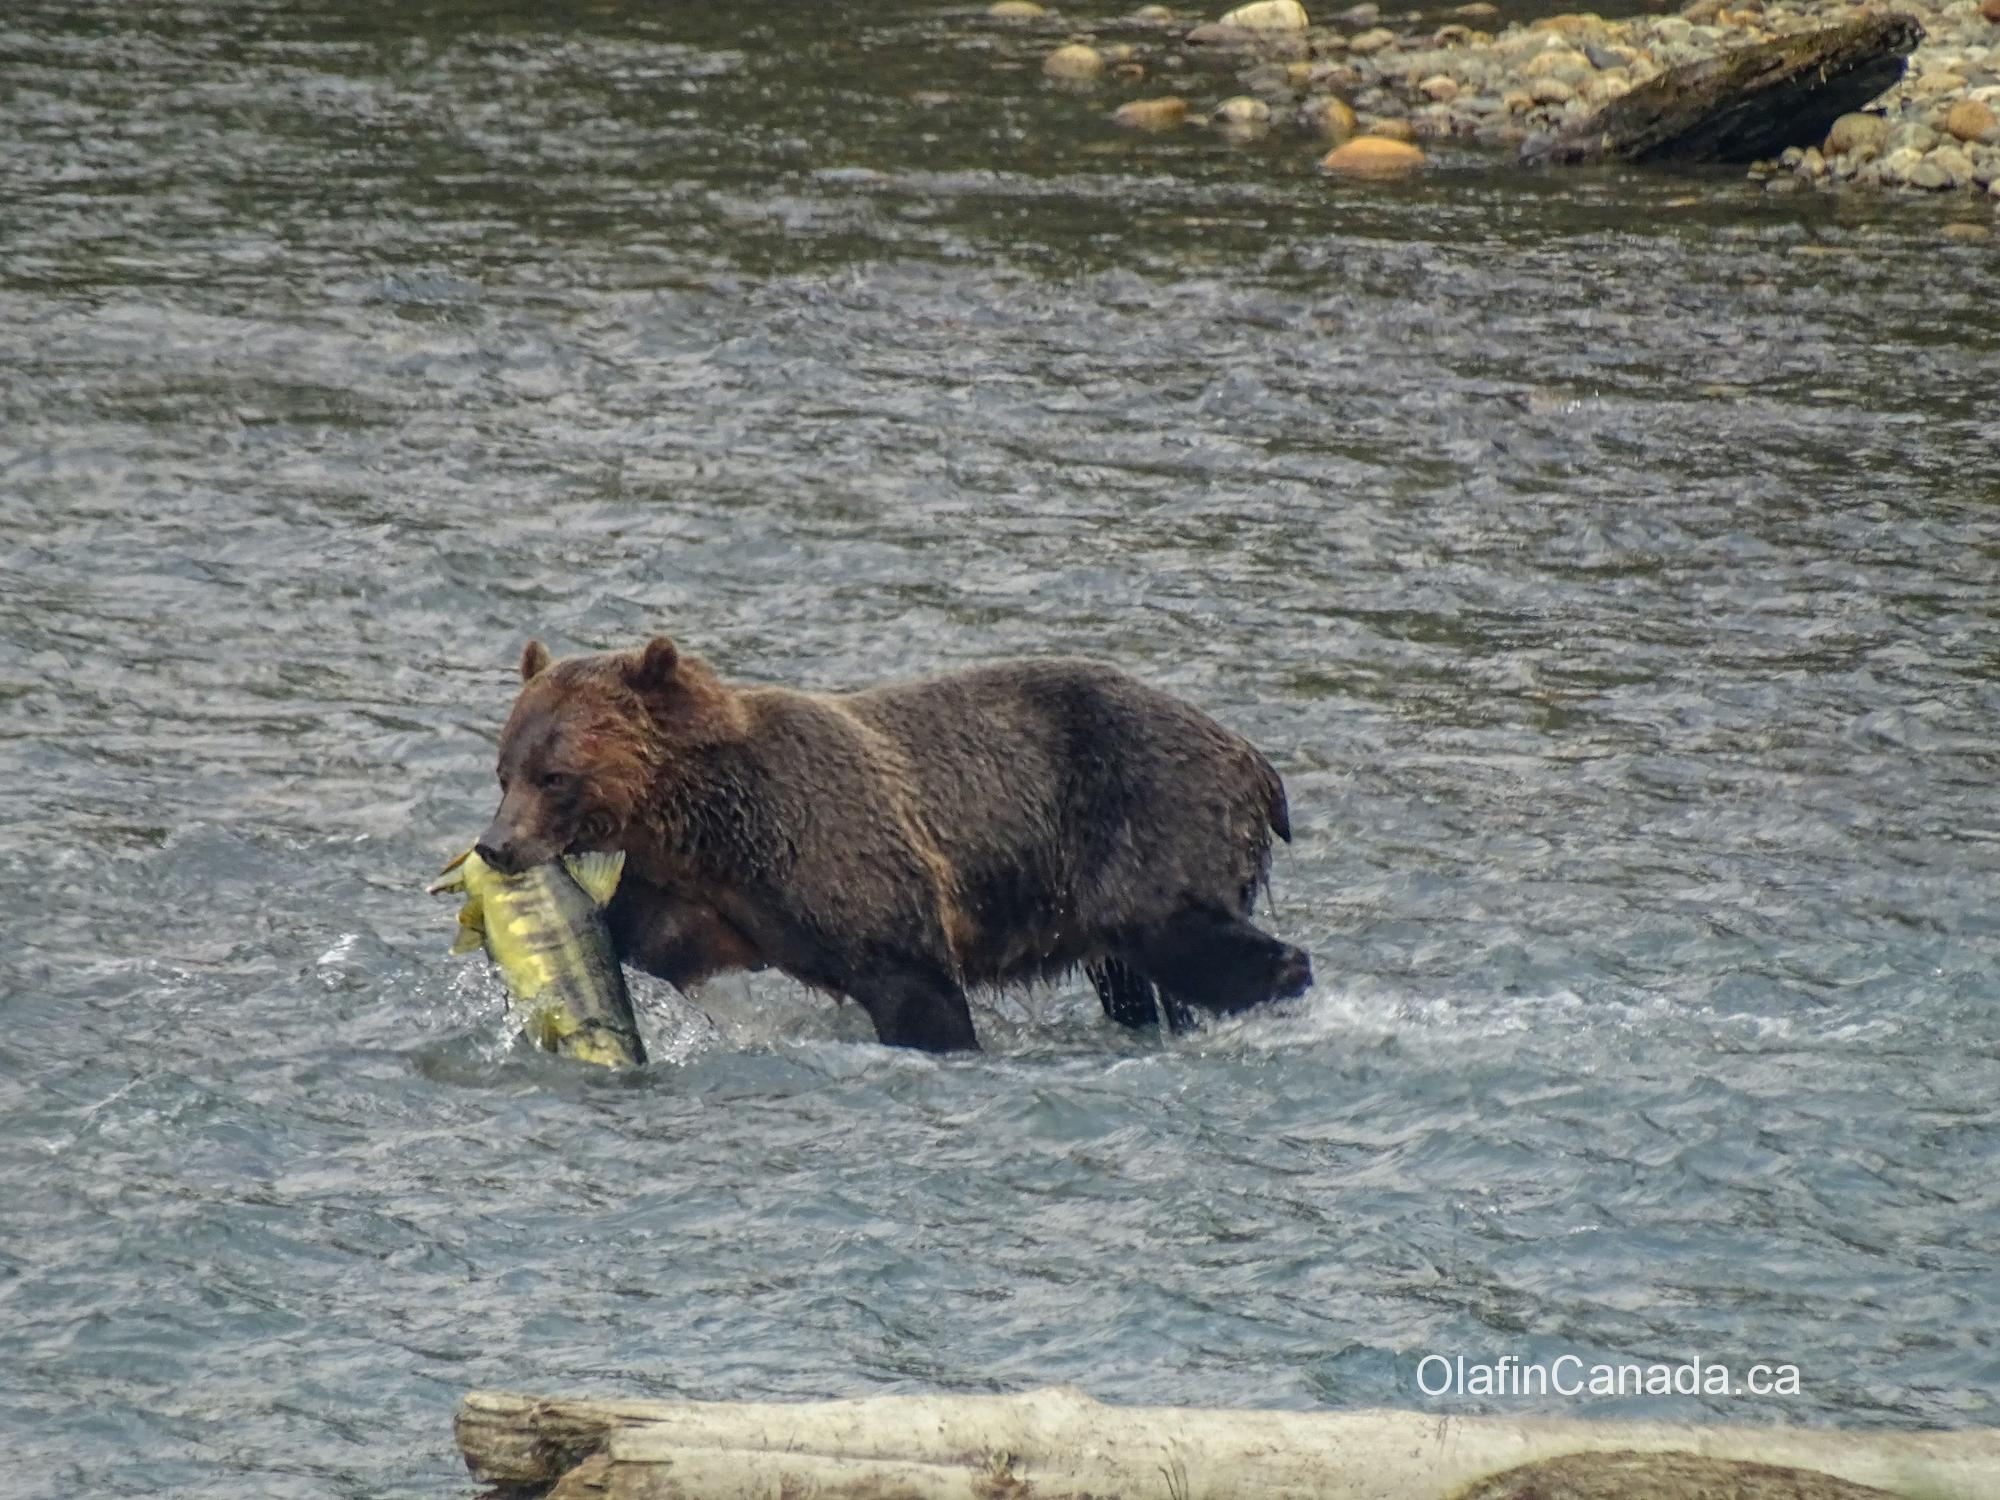 Grizzly catching a huge salmon in Bute Inlet #olafincanada #britishcolumbia #discoverbc #buteinlet #wildlife #grizzlybear